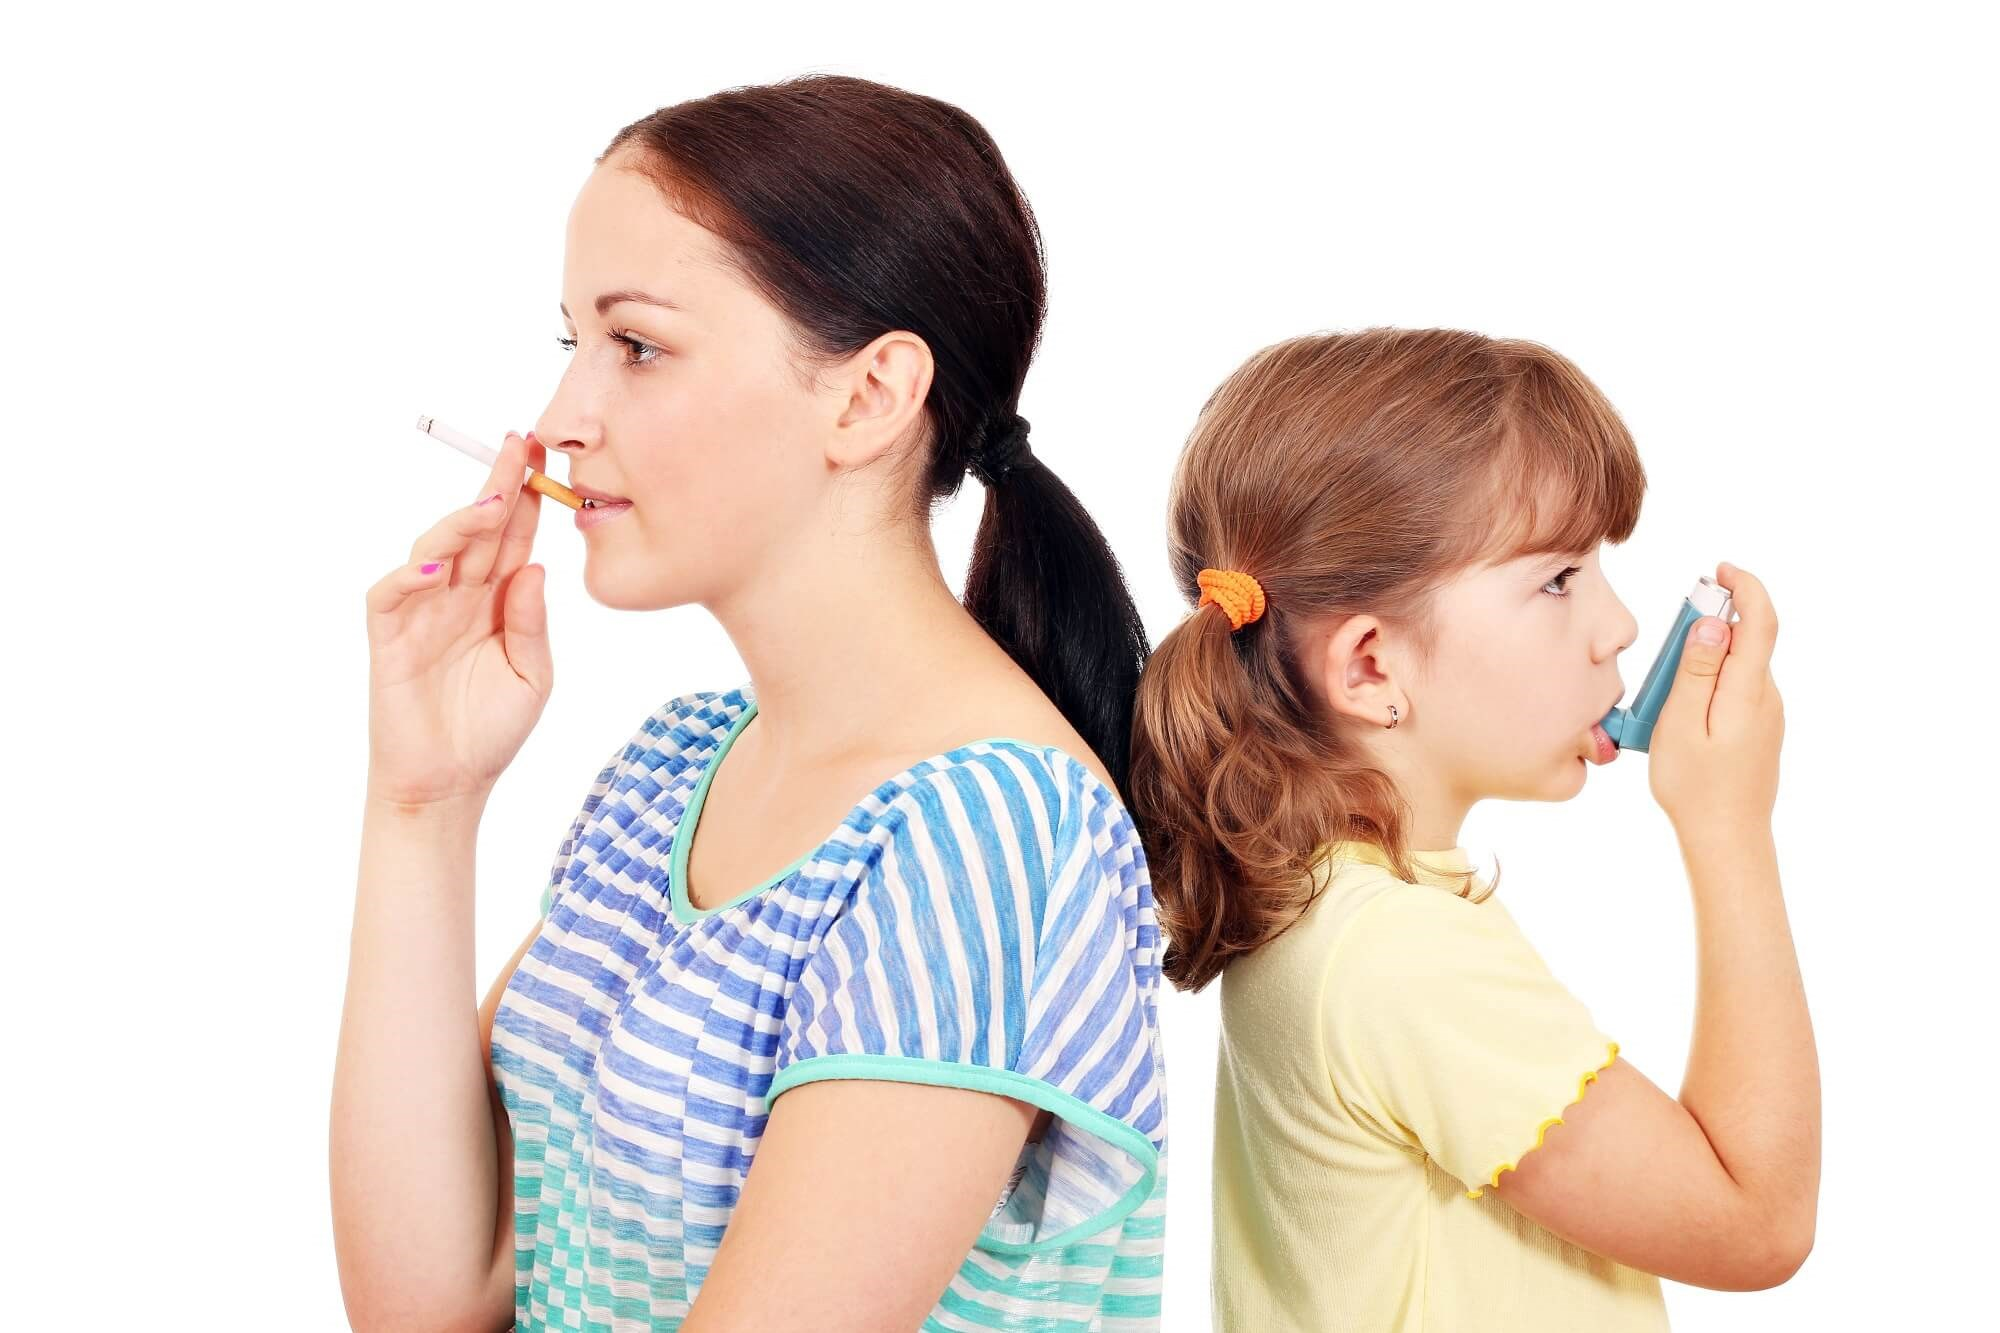 Home-Based Environmental Control Intervention Not Effective in Pediatric Asthma